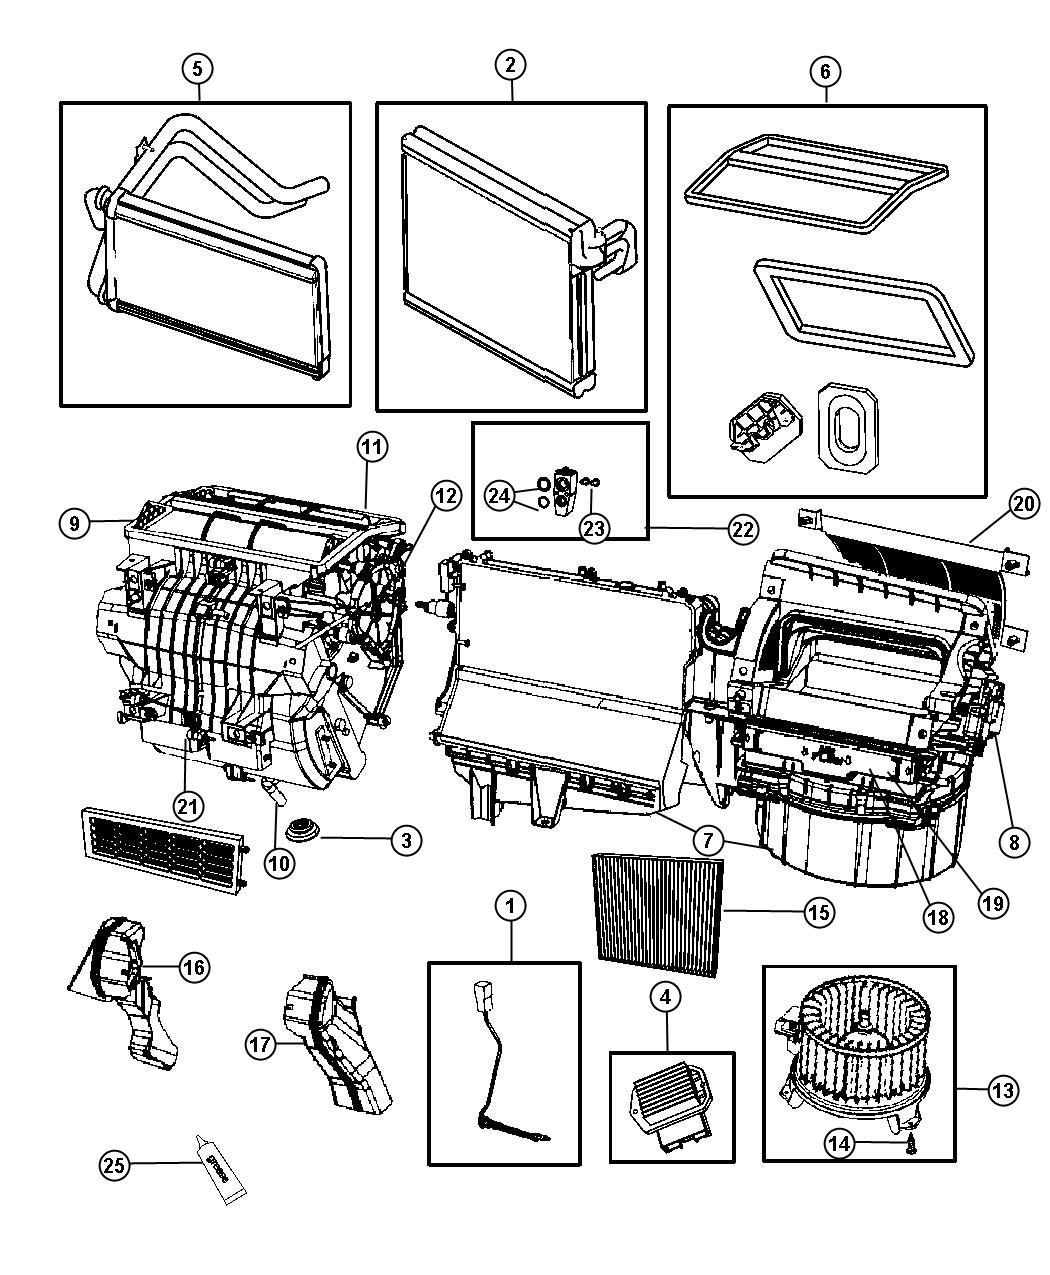 2013 Jeep Compass Drain. Used for: a/c and heater. Export